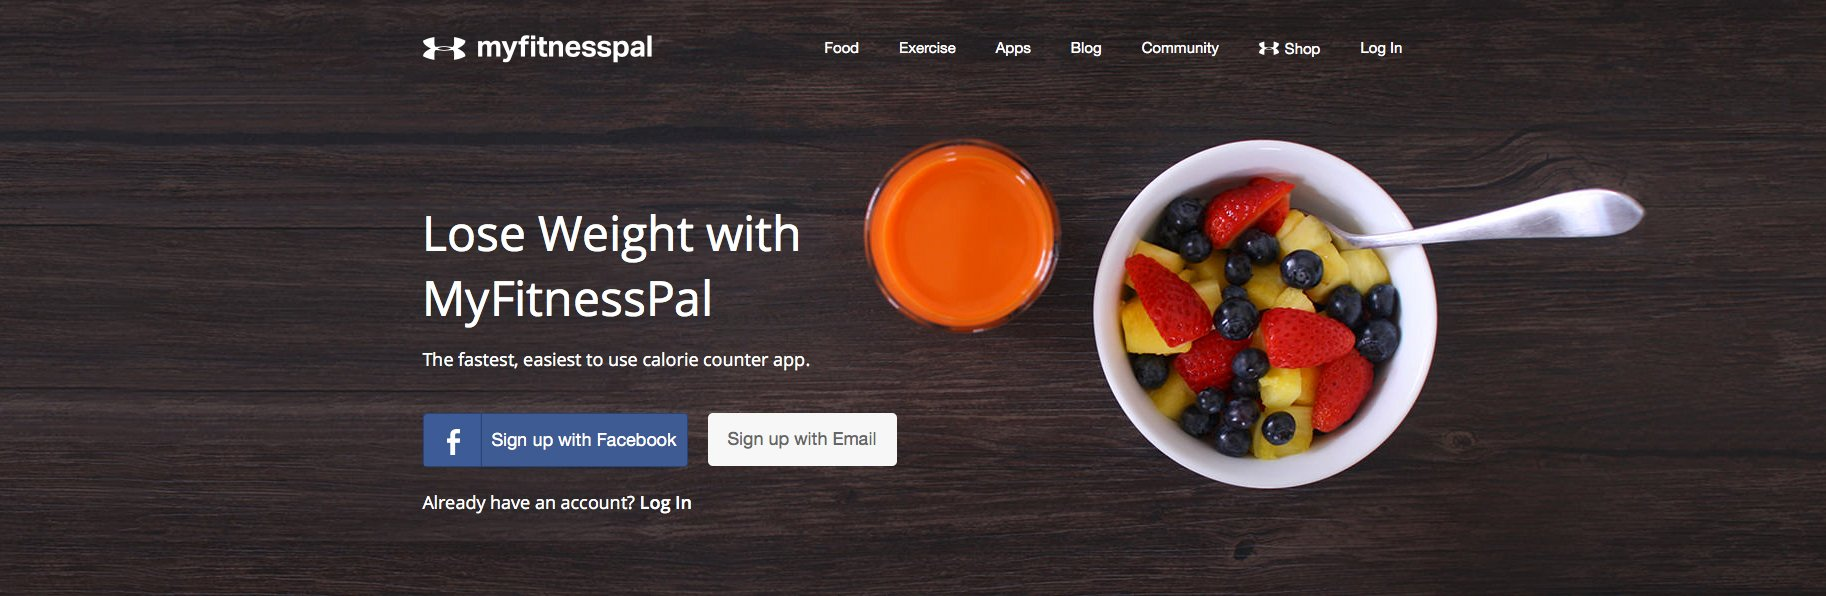 MyFitnessPal introduces Restaurant Logging to help stay focused while eating out